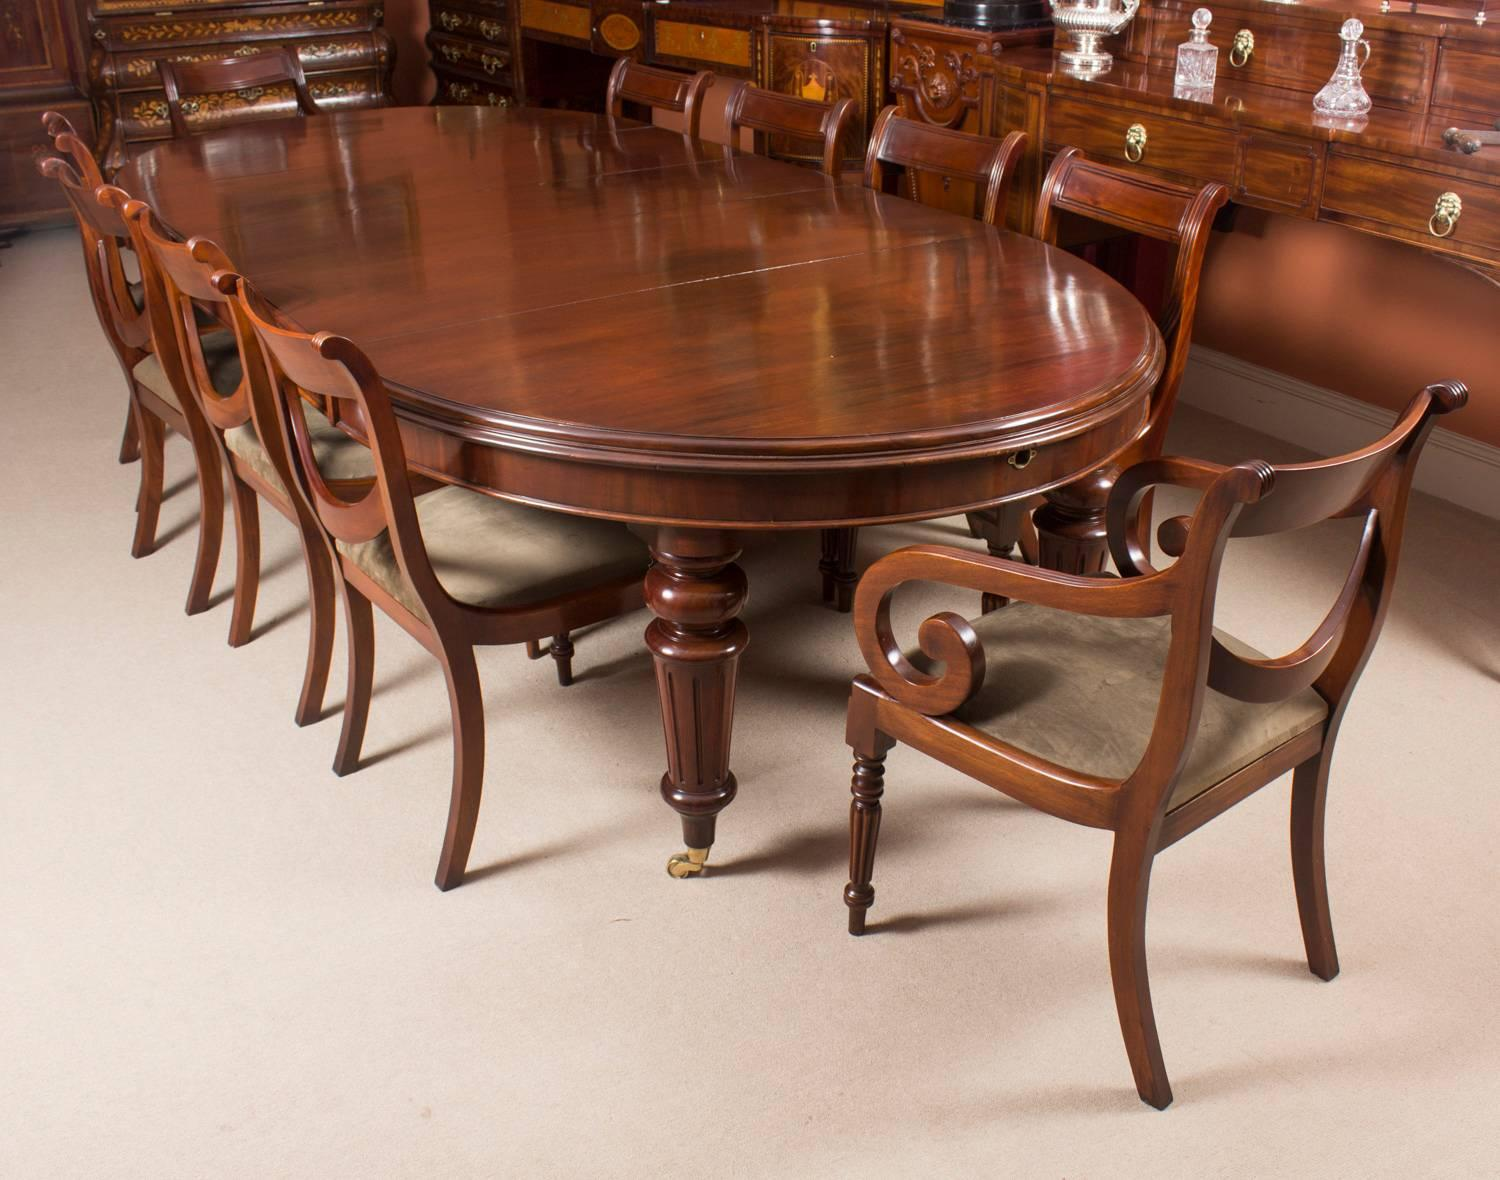 Etonnant Antique Victorian Oval Flame Mahogany Extending Dining Table, 19th Century  At 1stdibs